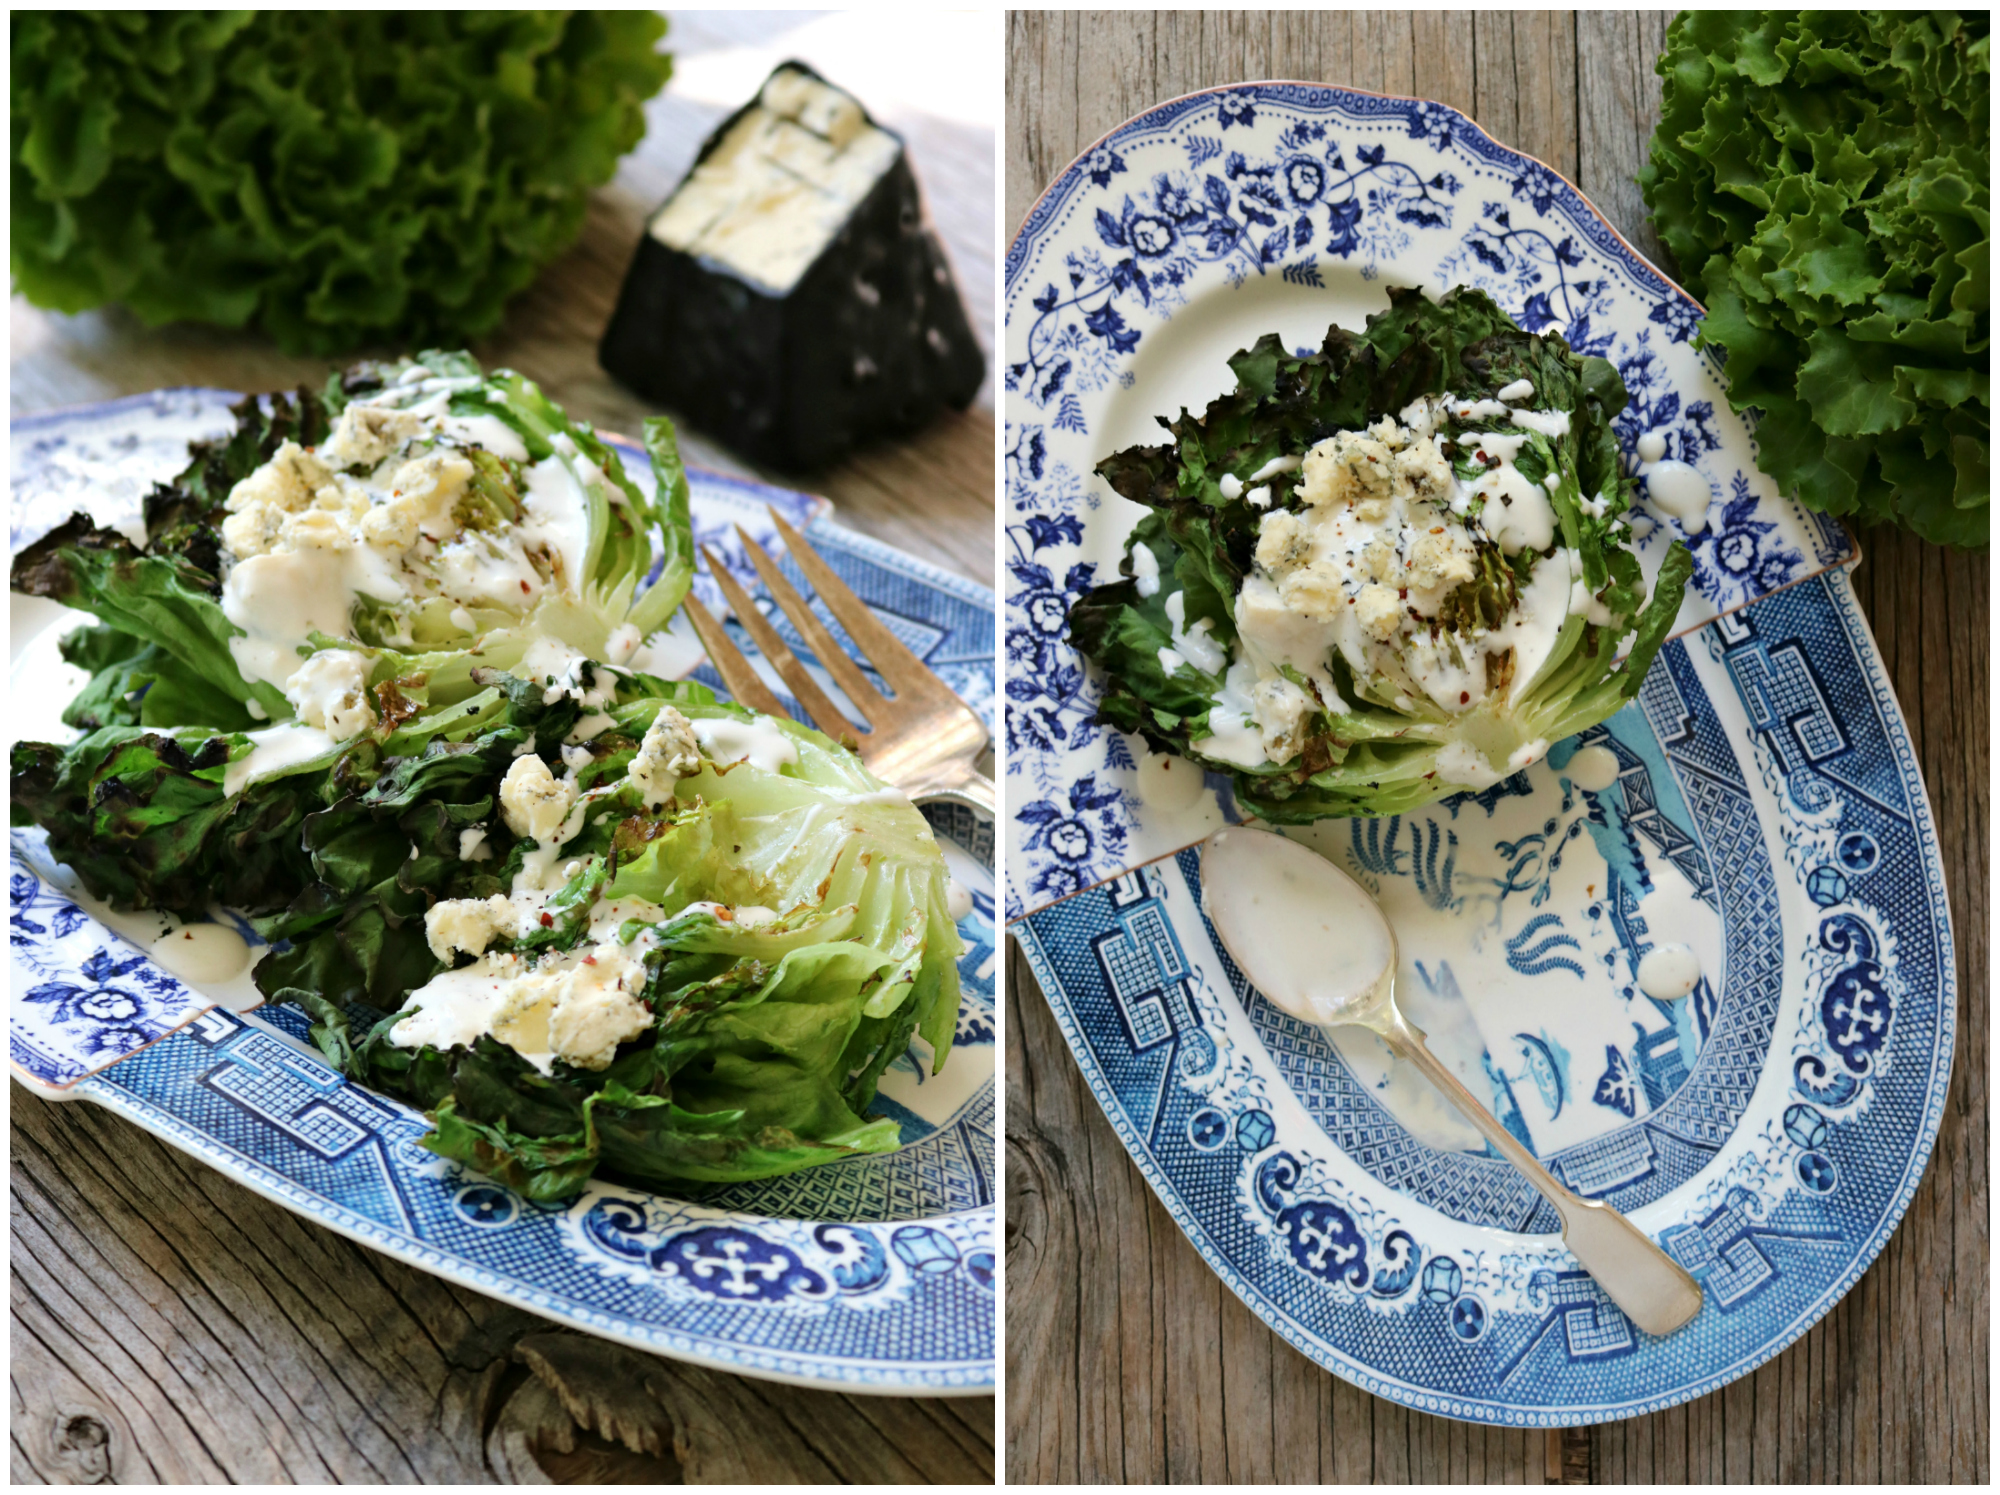 Grilled Lettuce with Blue Cheese Dressing 11